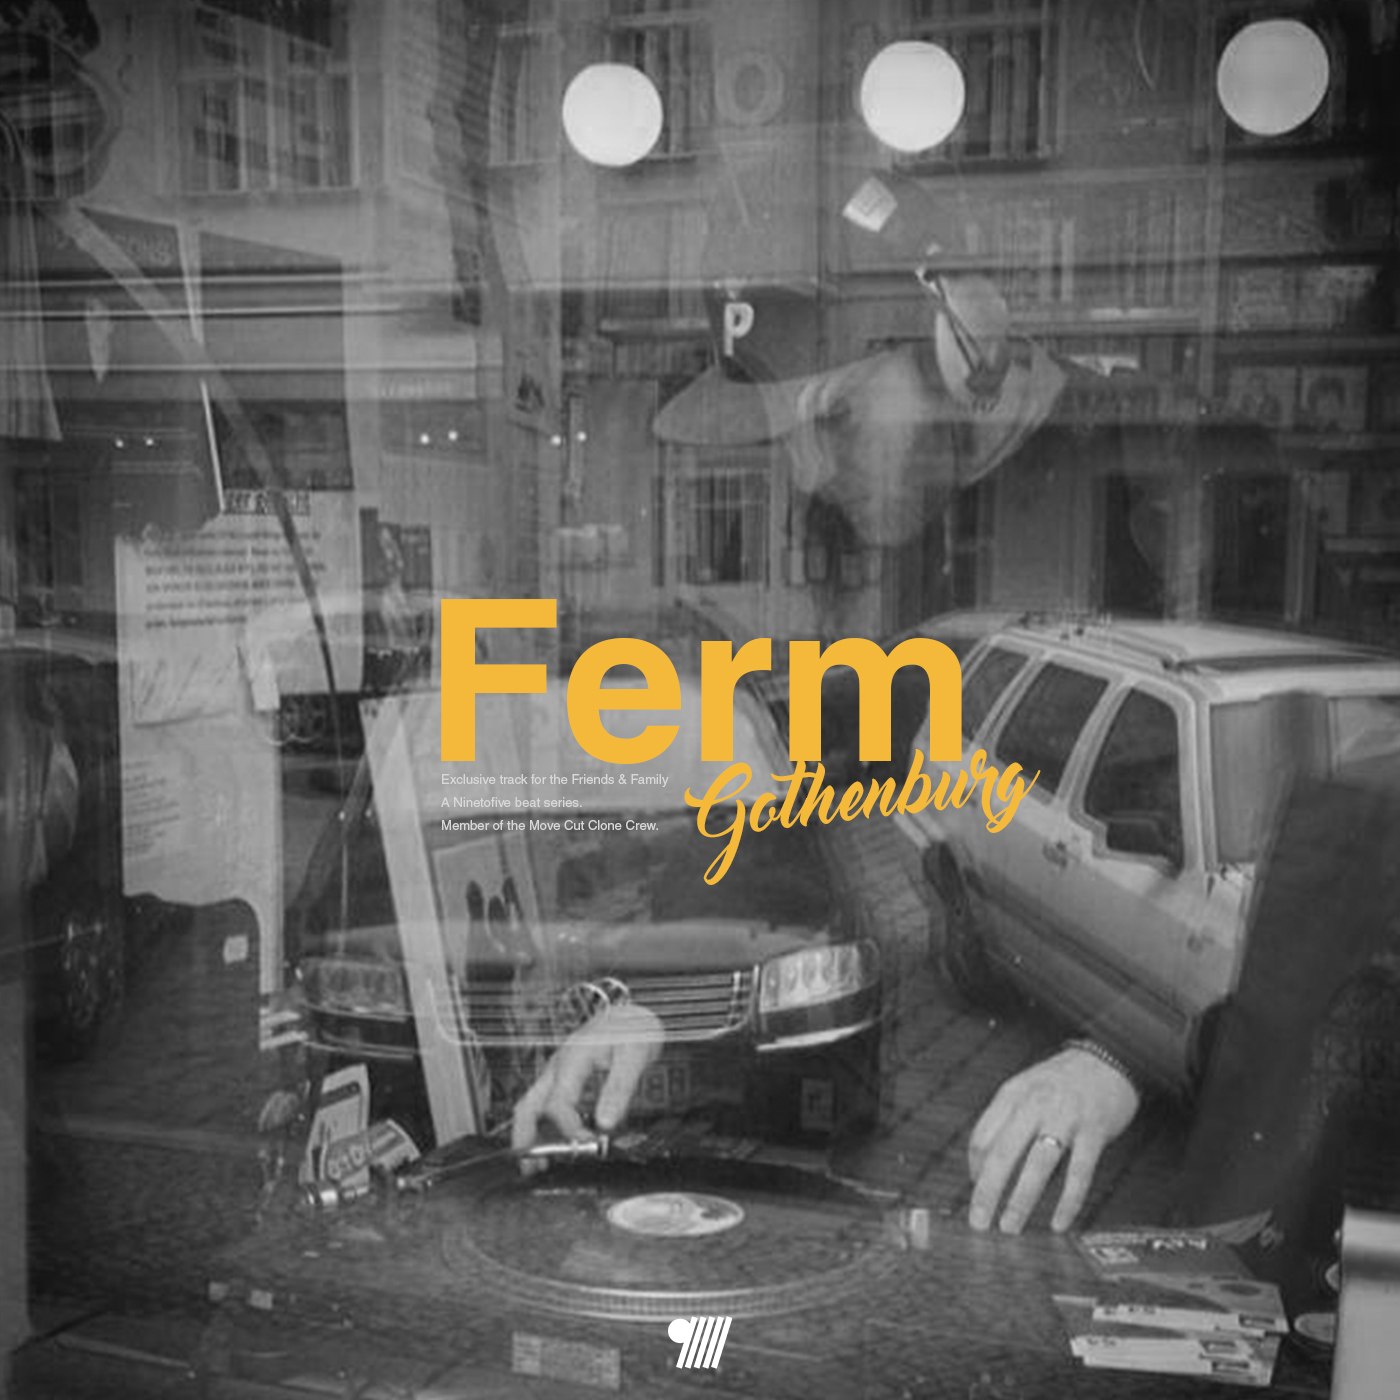 Friends & Family: FERM